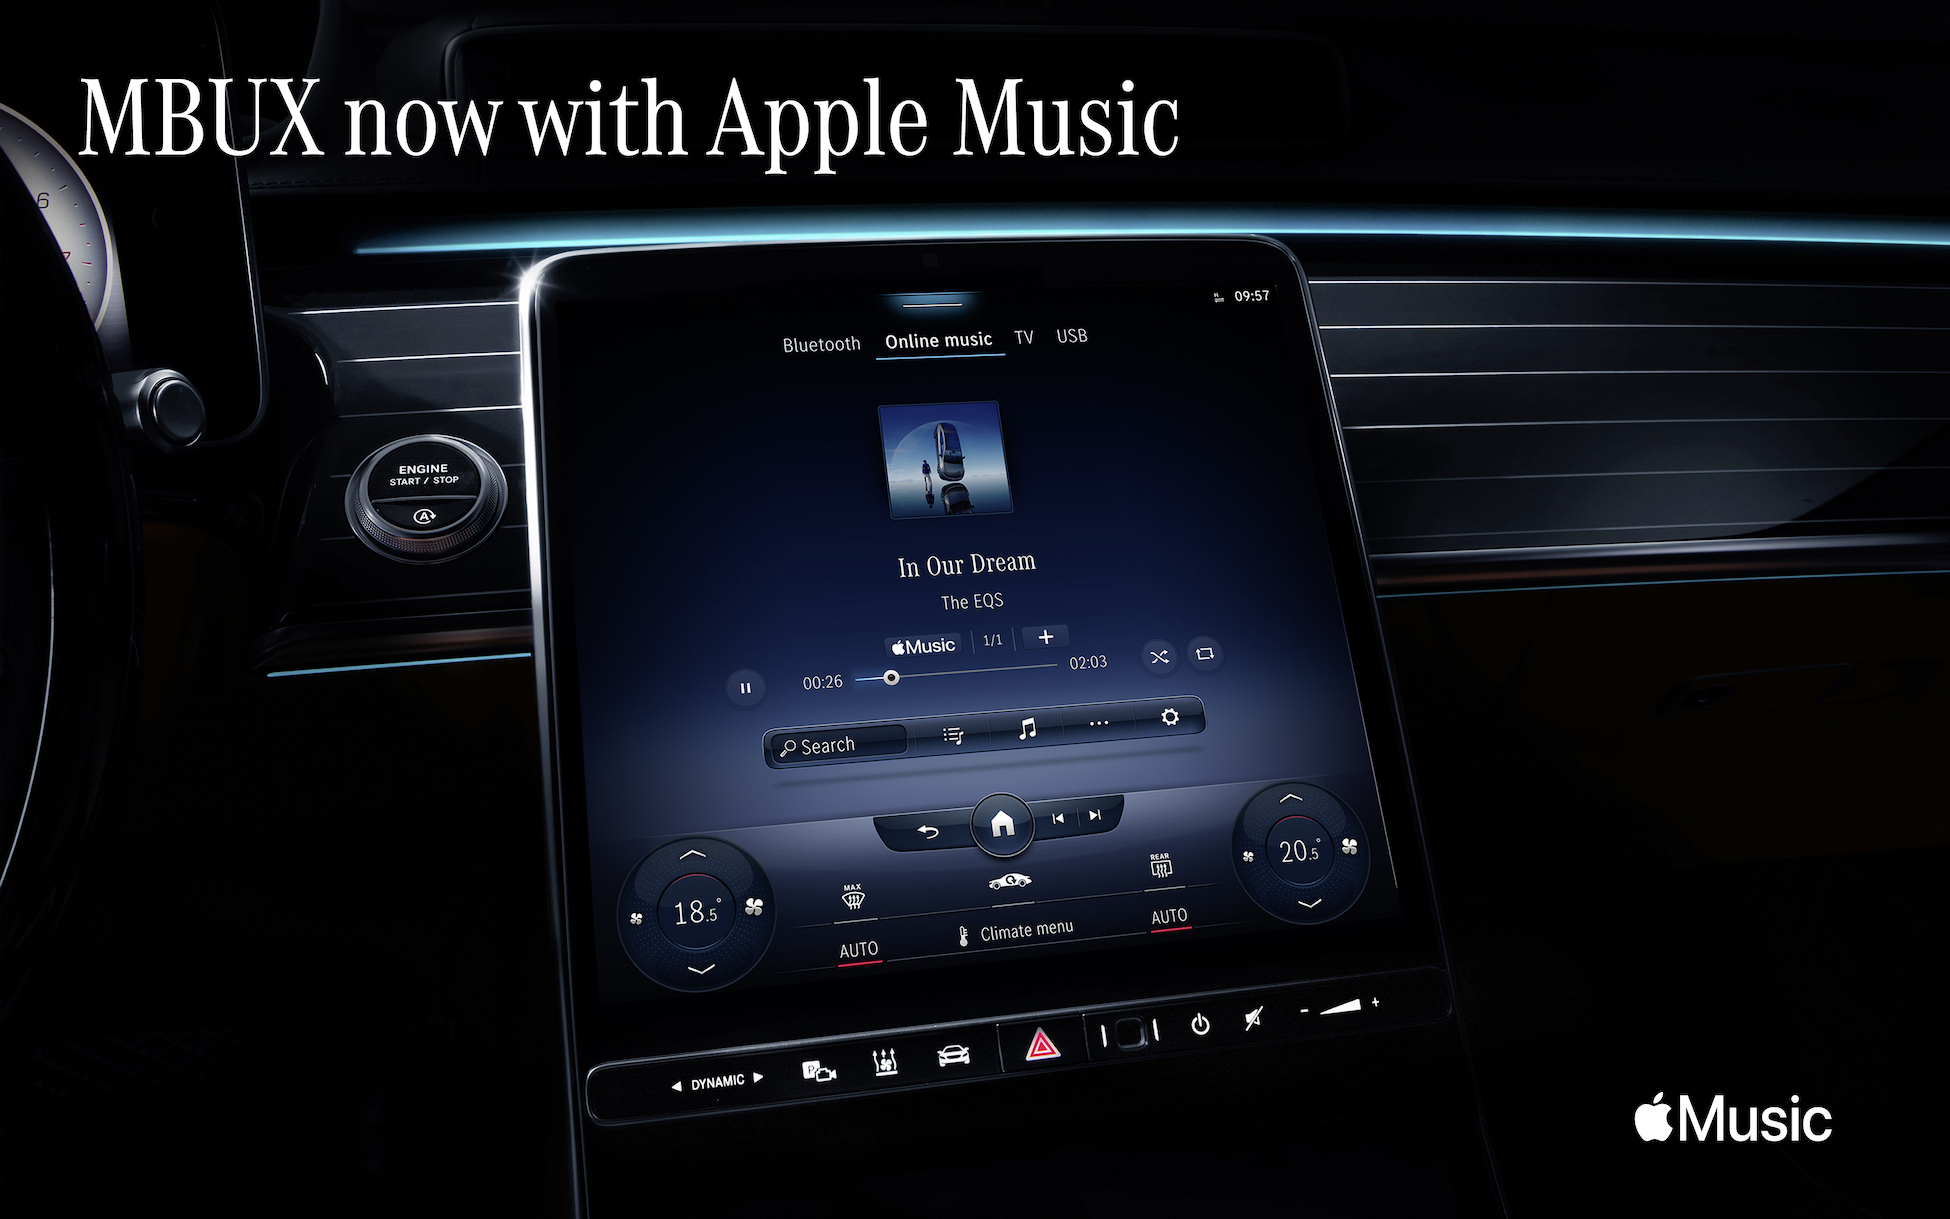 Apple Music Coming to Mercedes-Benz MBUX Infotainment System